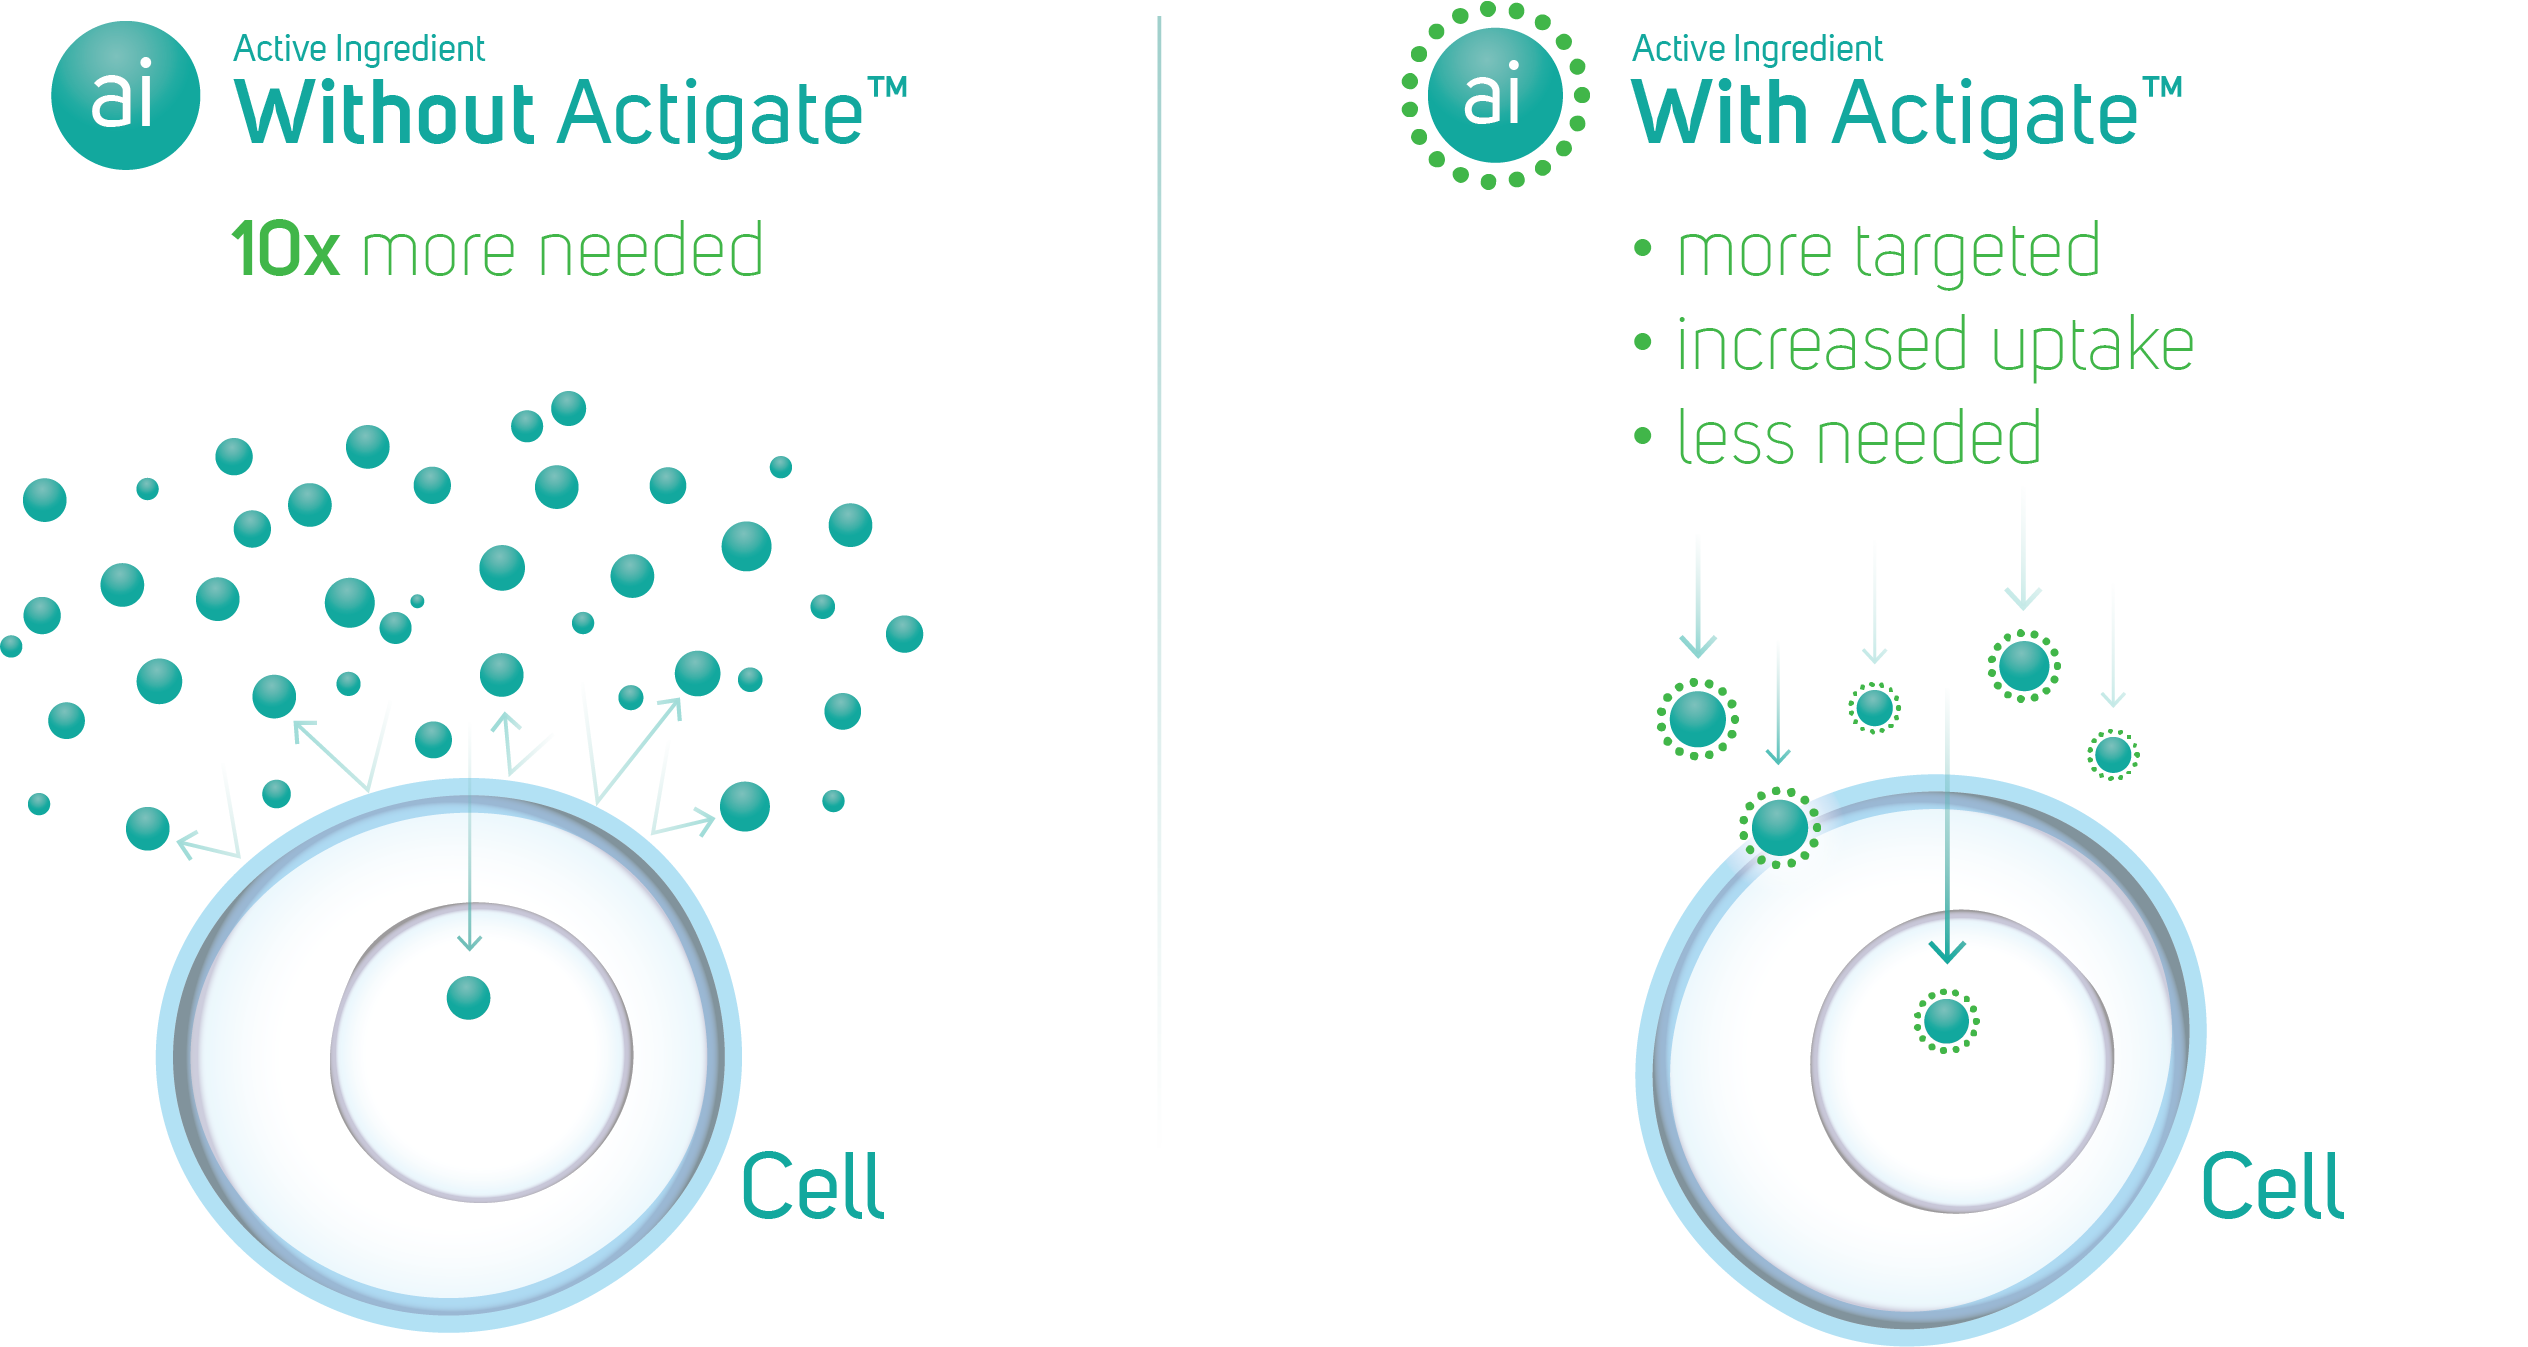 ore targeted, increased uptake and less needed with Actigate